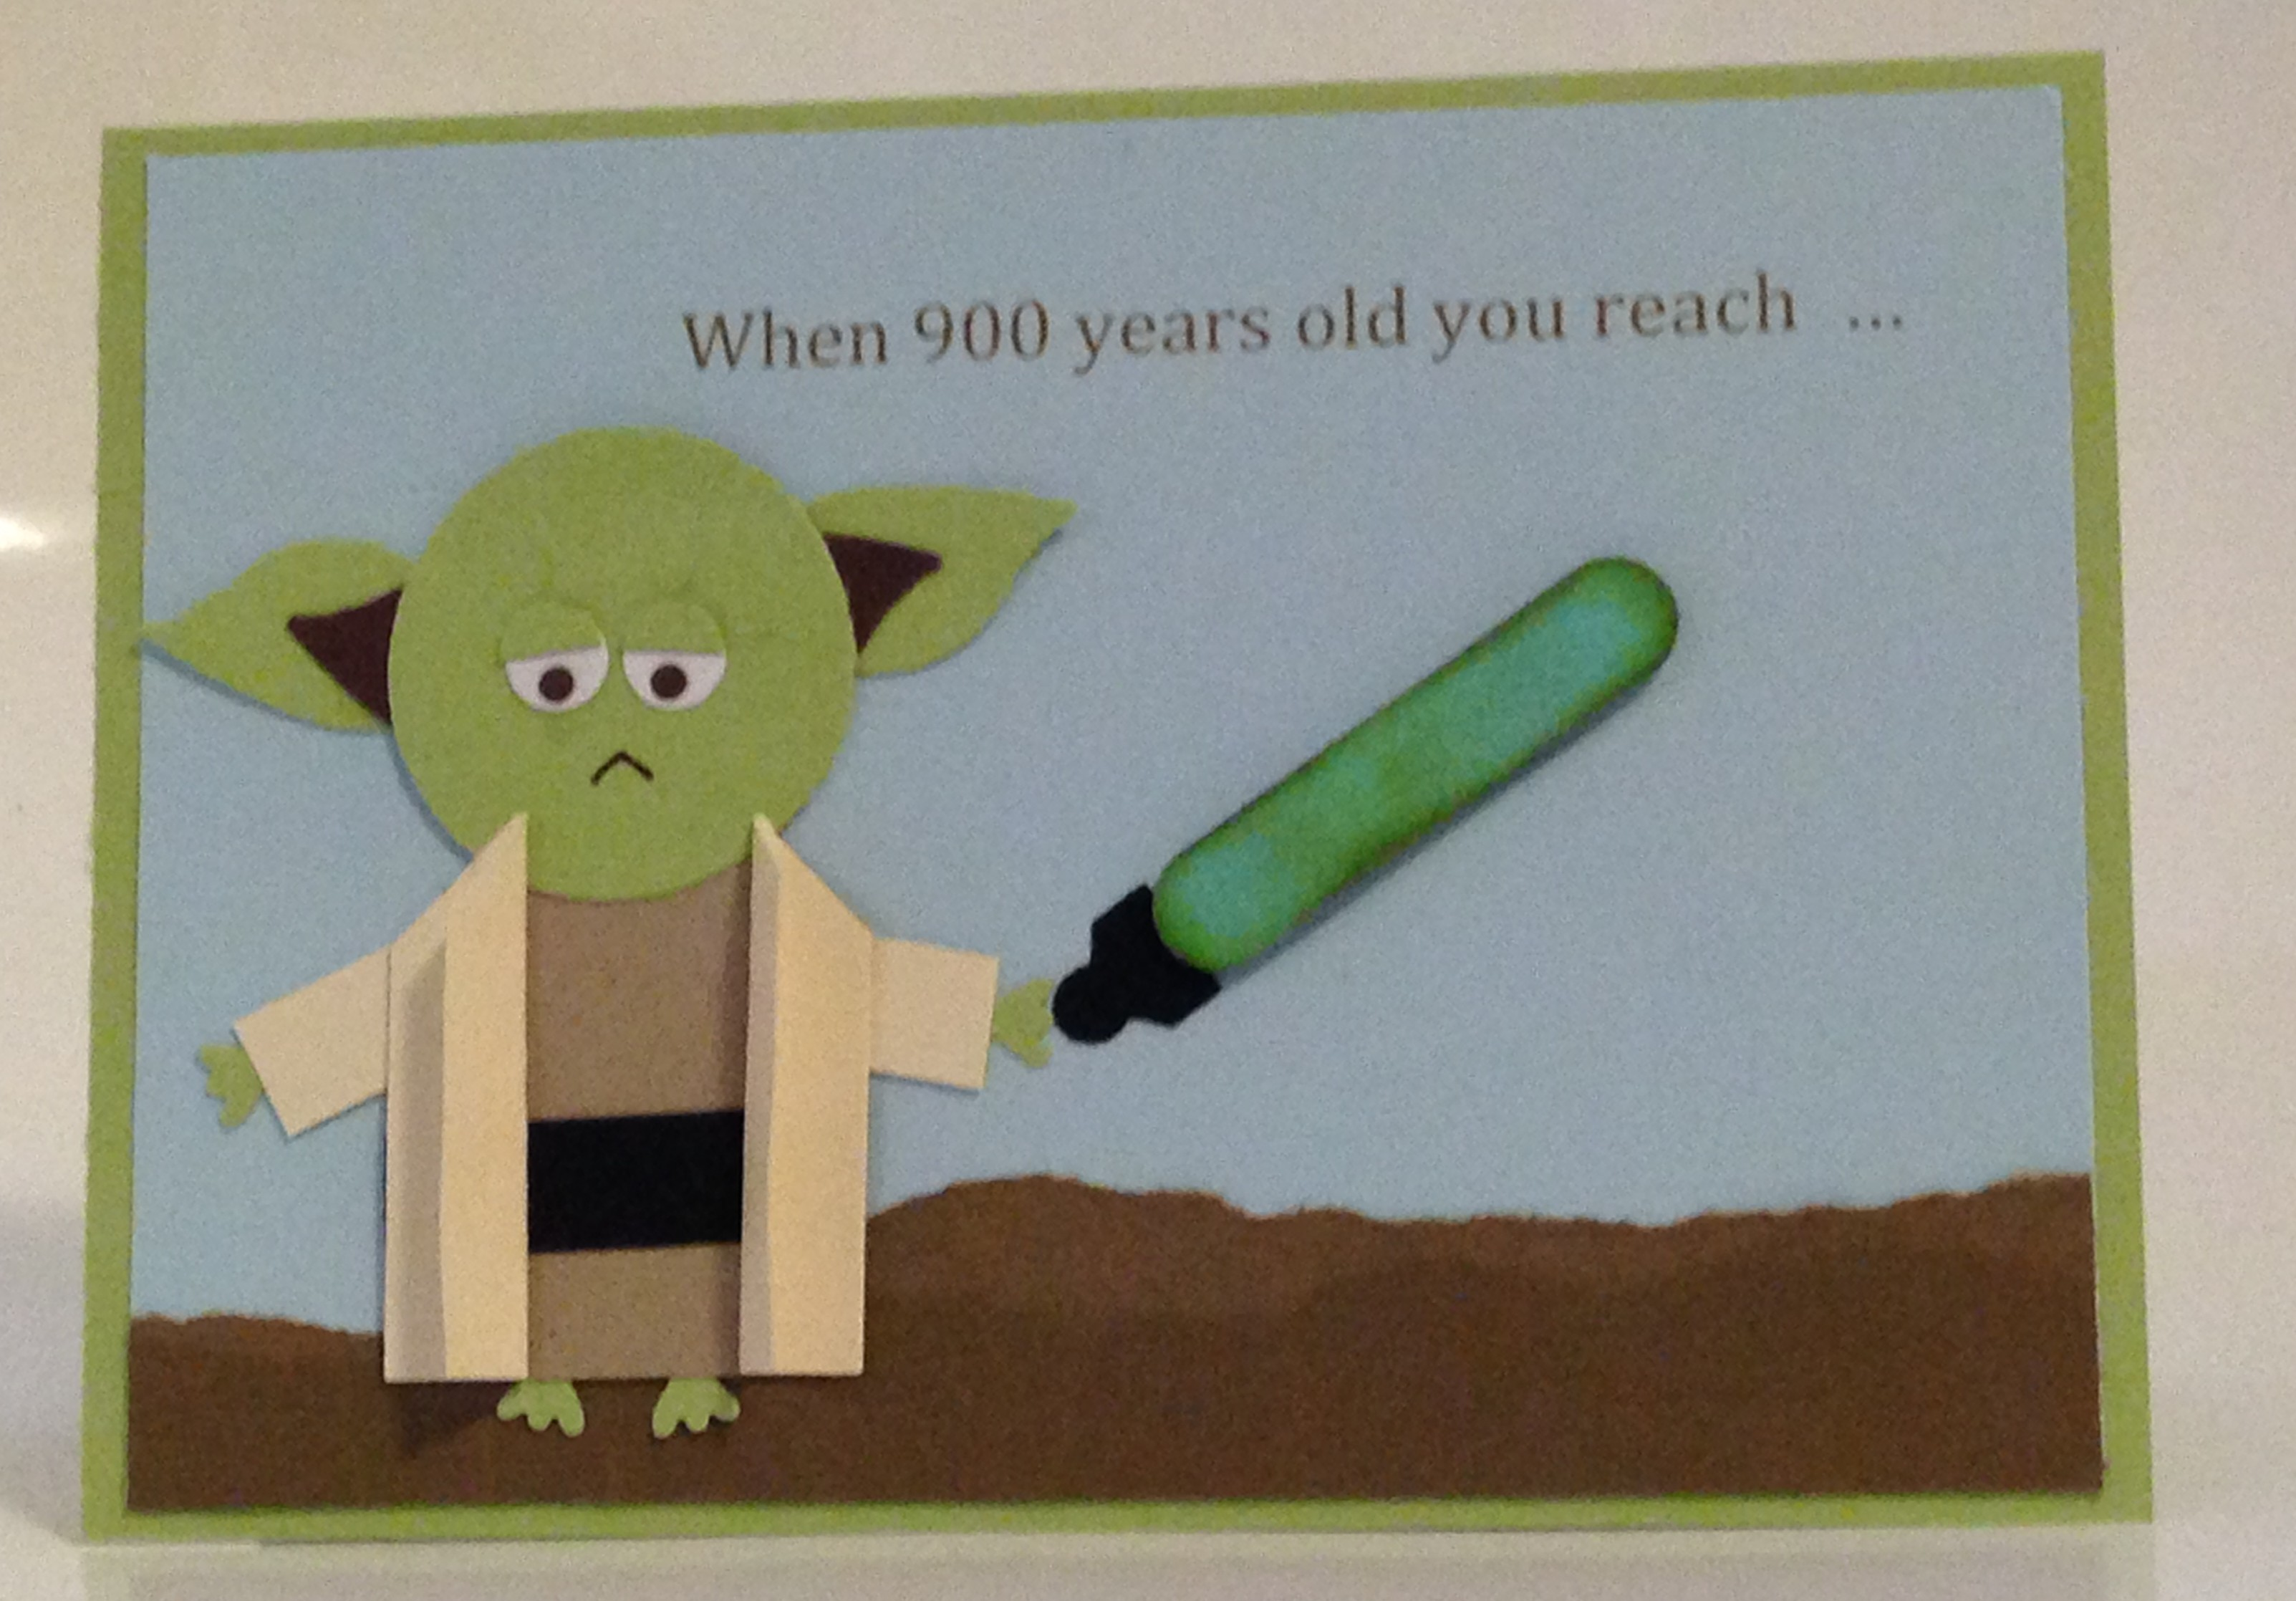 Star wars punch art yoda birthday card caros pretty things yoda punch art card bookmarktalkfo Image collections